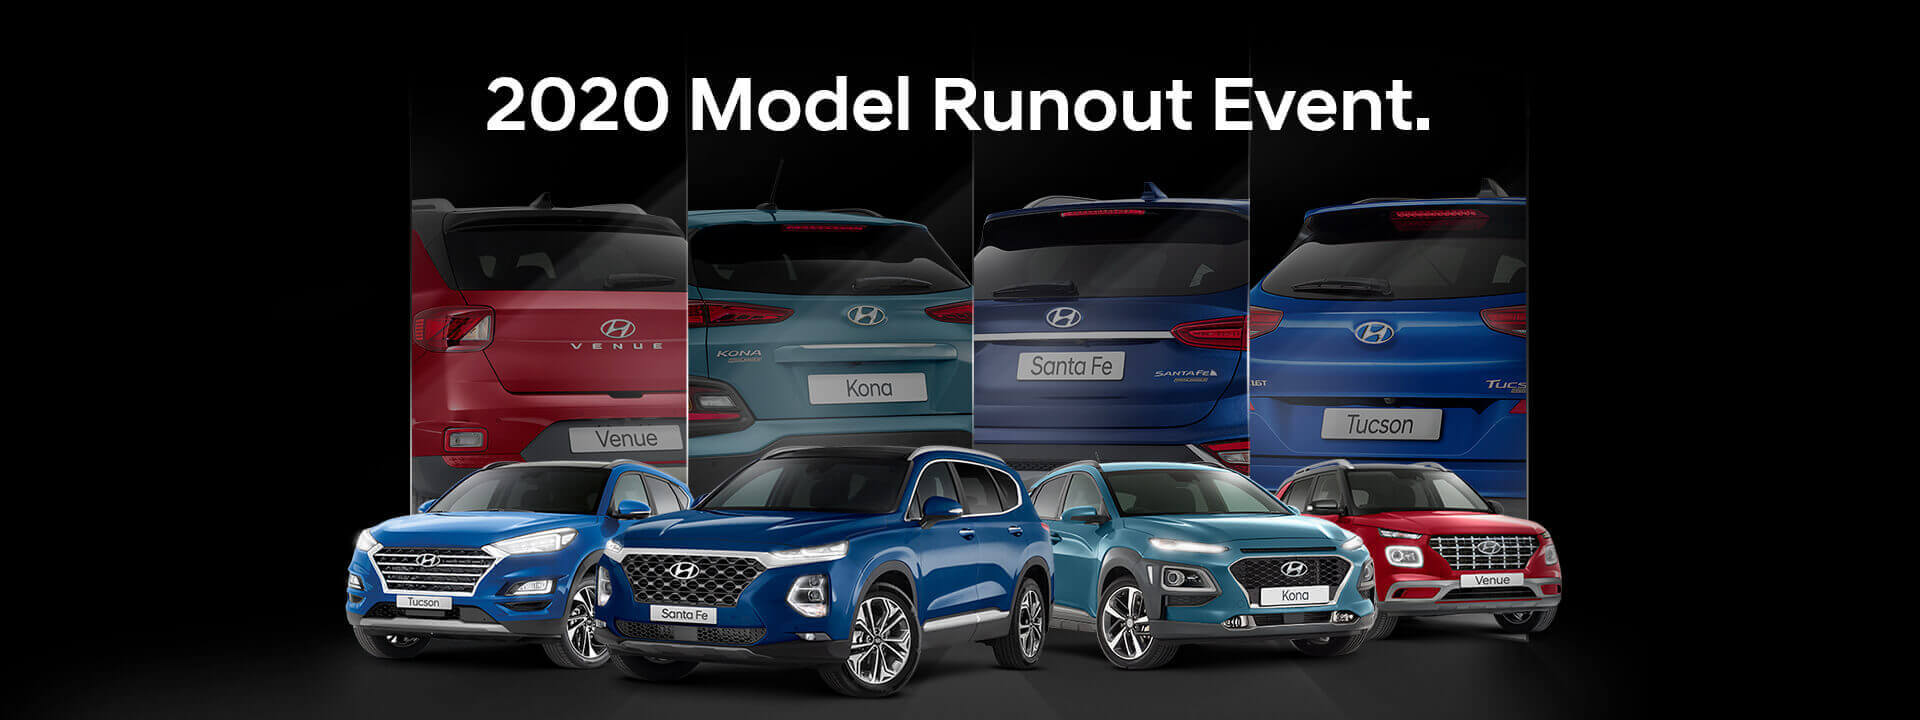 Hyundai Q3 Offers 1920x720